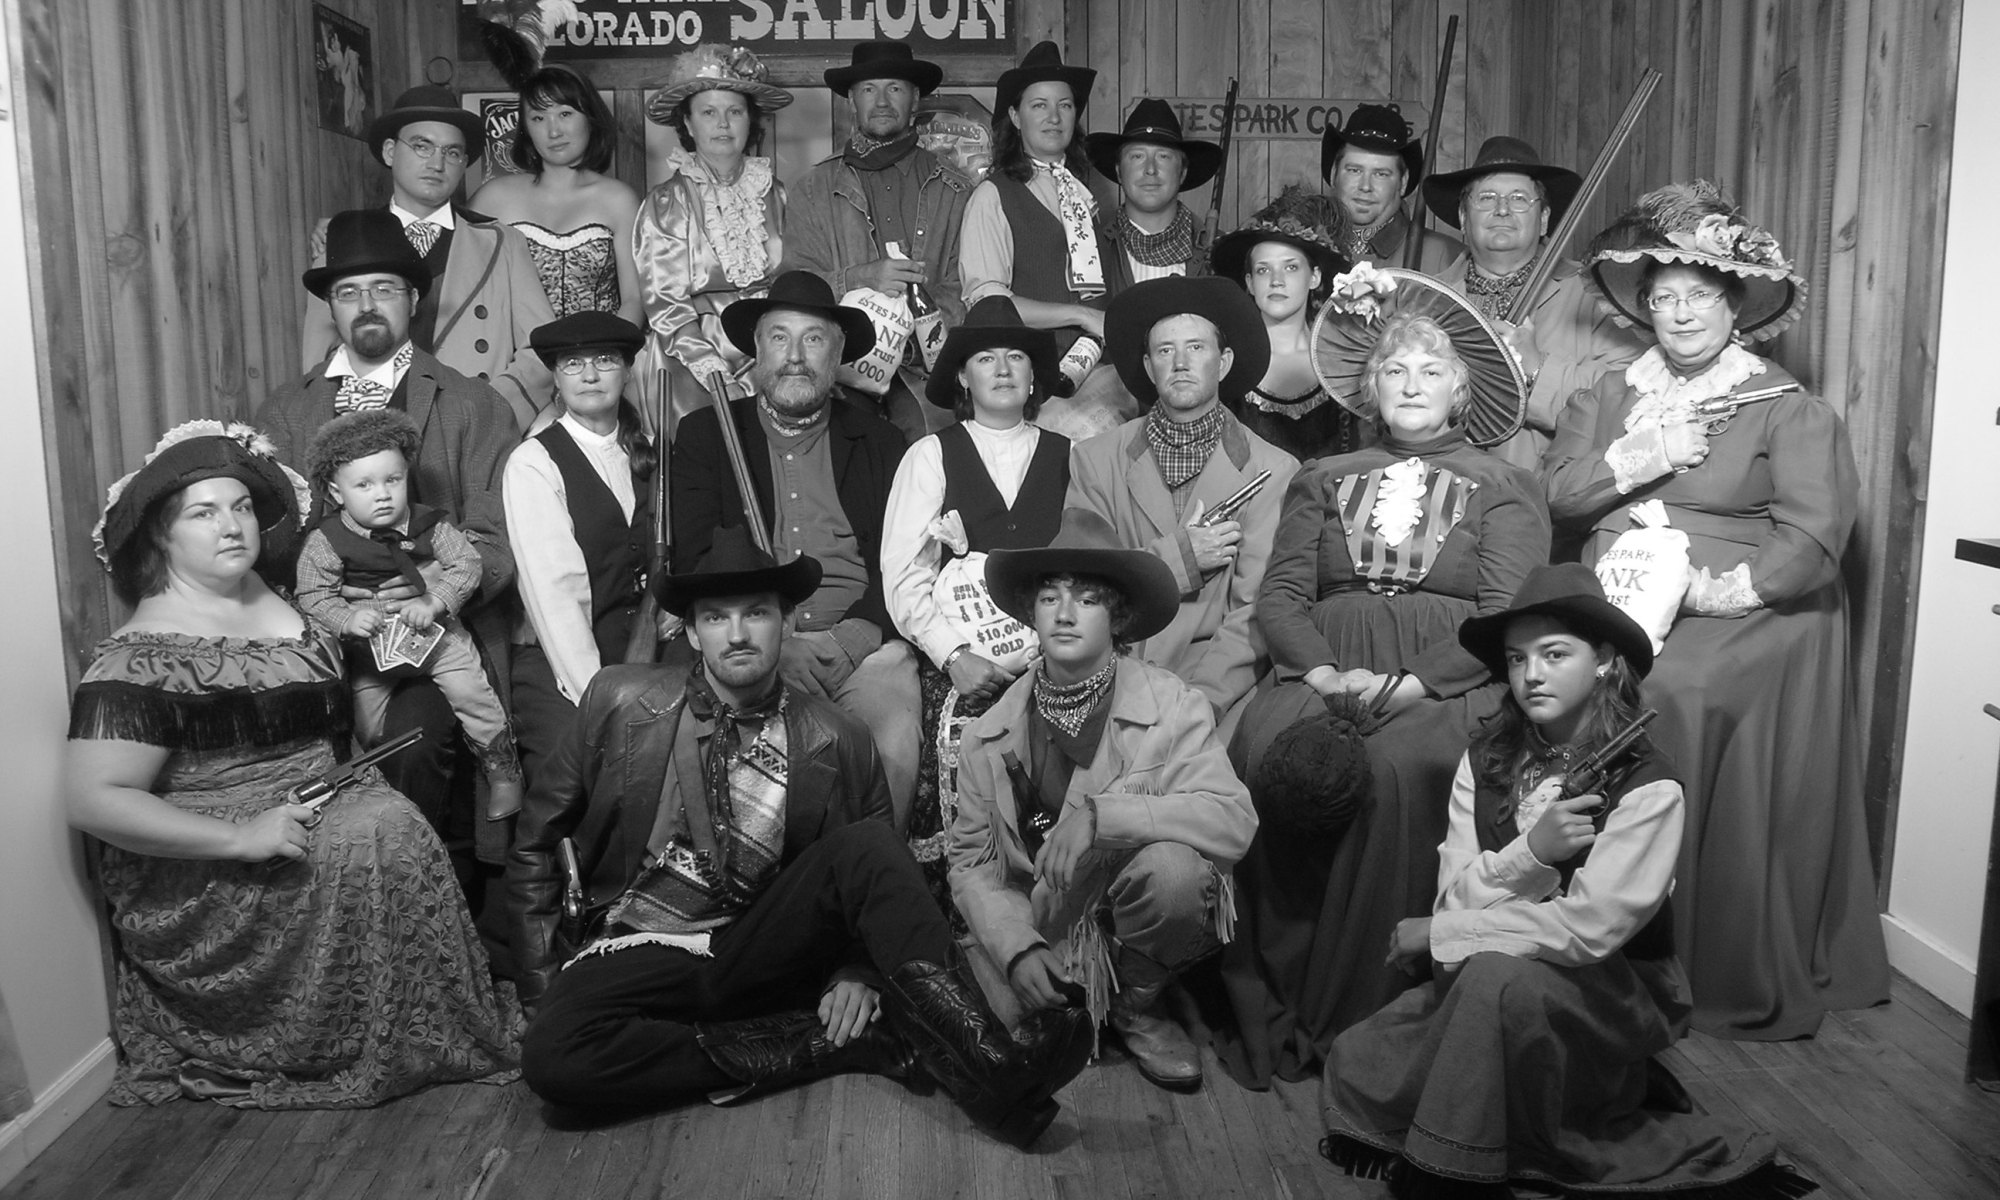 Old time photo from Estes Park of the family